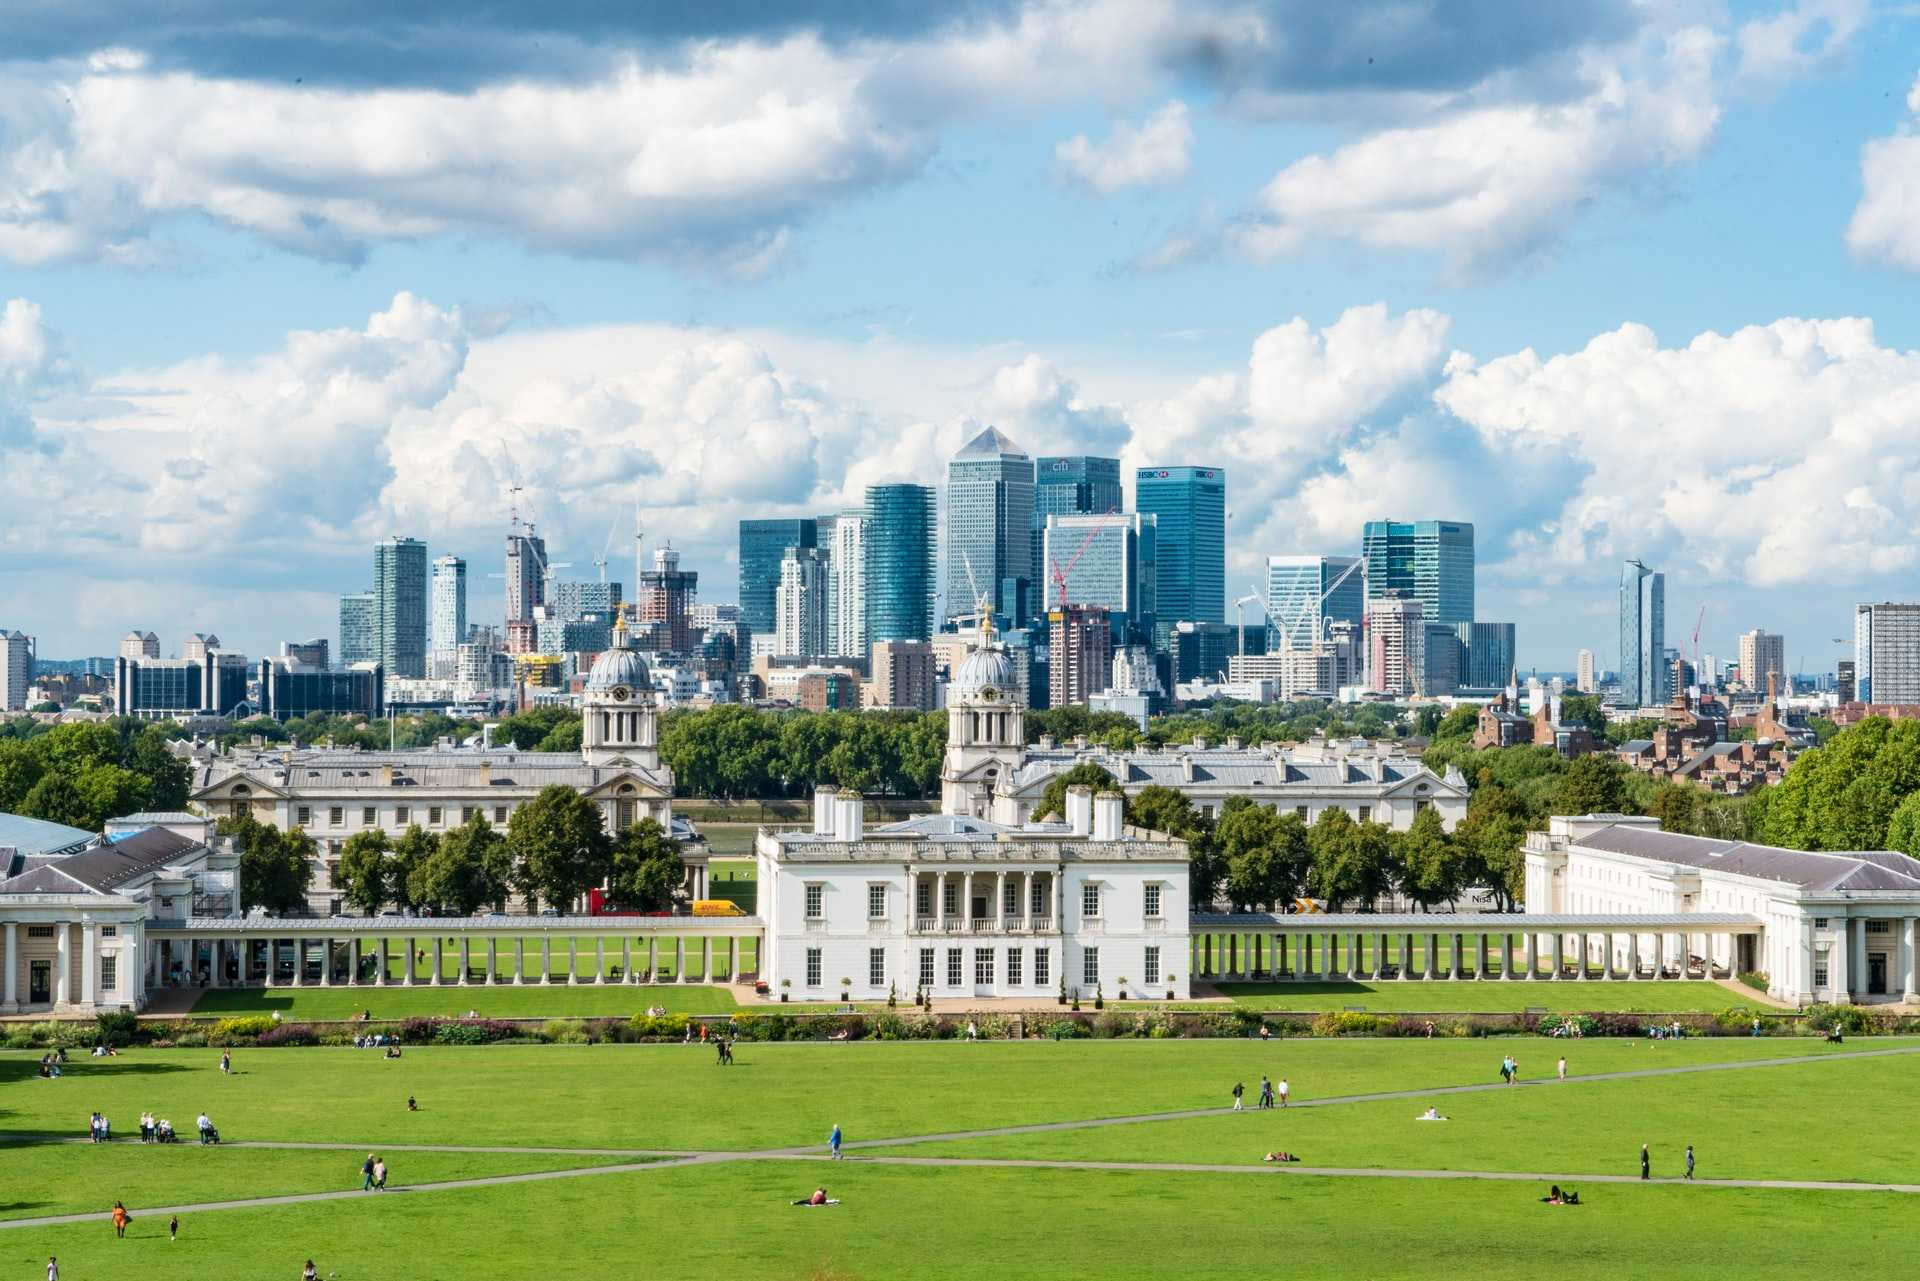 greenwich-park-overlooking-the-london-skyline-most-beautiful-parks-in-london